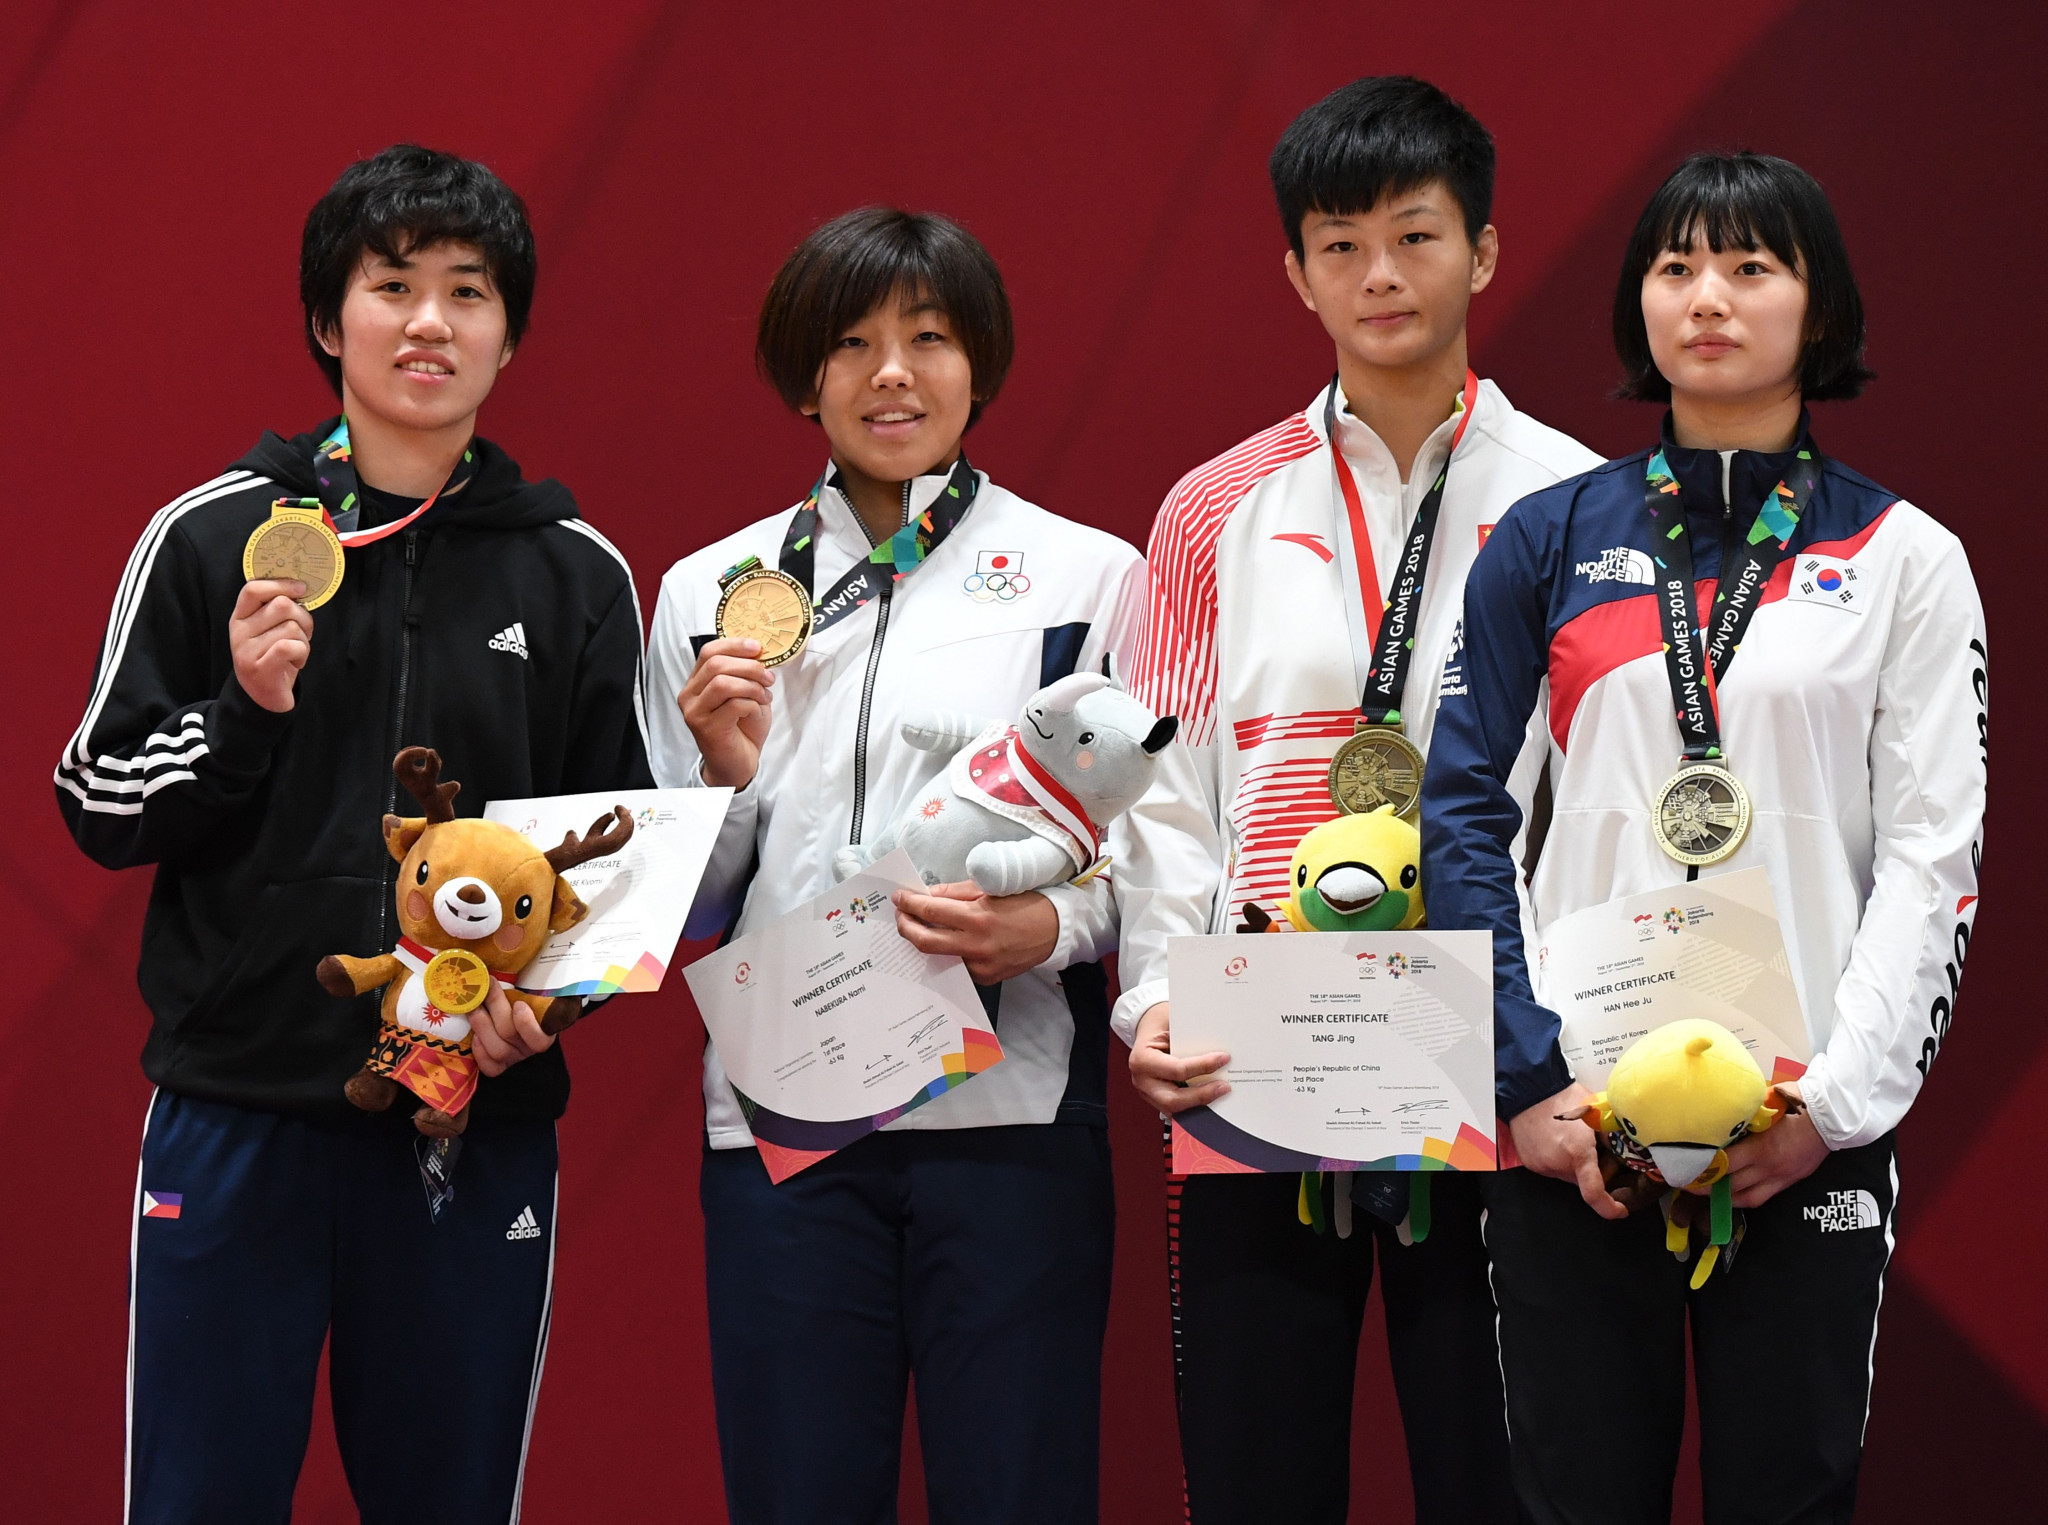 Nami Nabekura, second from left, was one of four judo gold medallists for Japan at the 2018 Asian Games today ©Getty Images